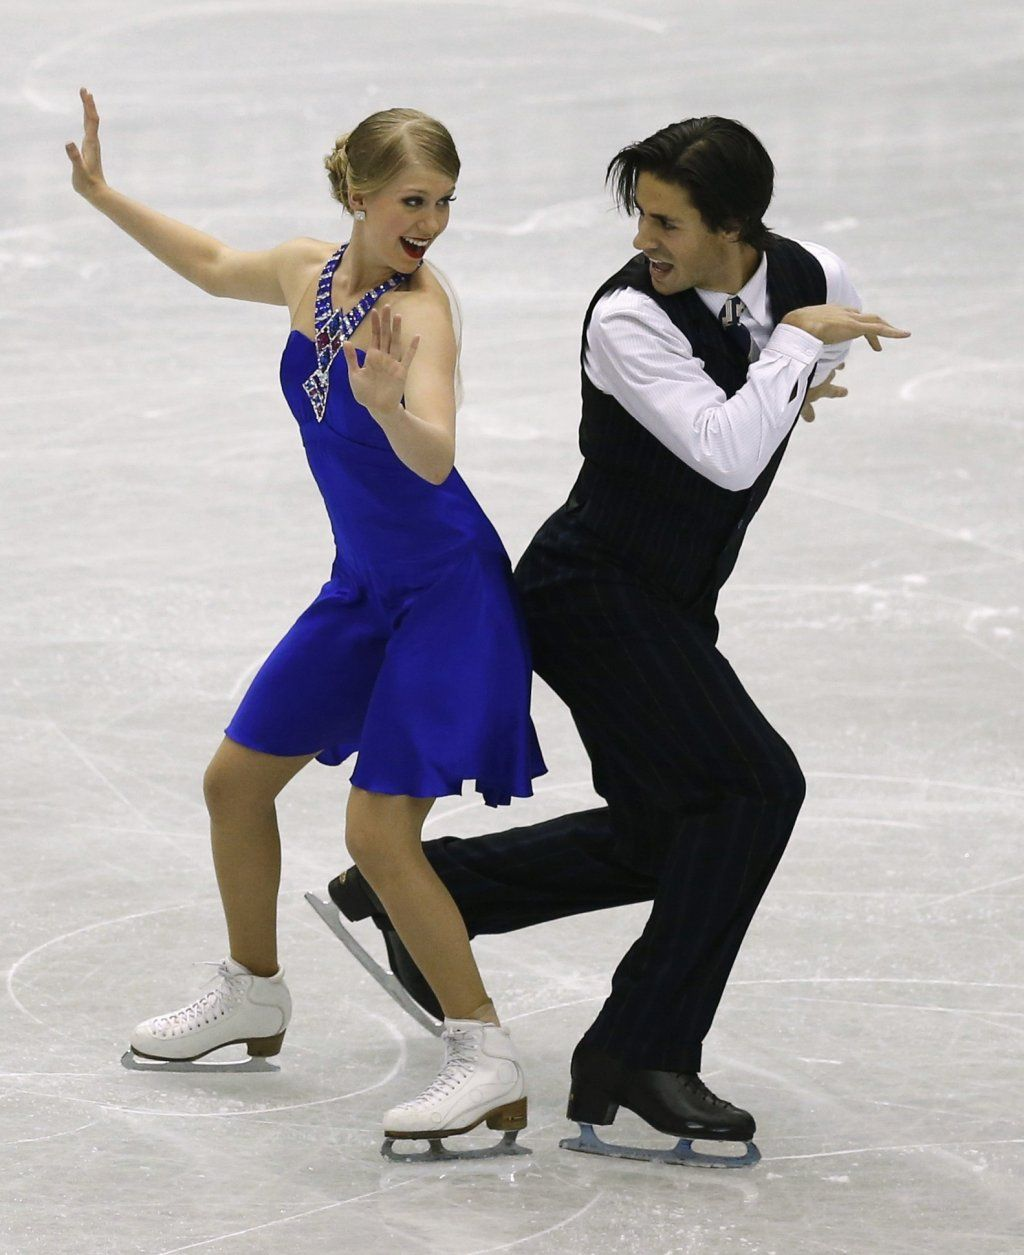 Weaver and Poje of Canada perform during the ice dance short dance at the ISU Grand Prix of Figure Skating Final in Fukuoka